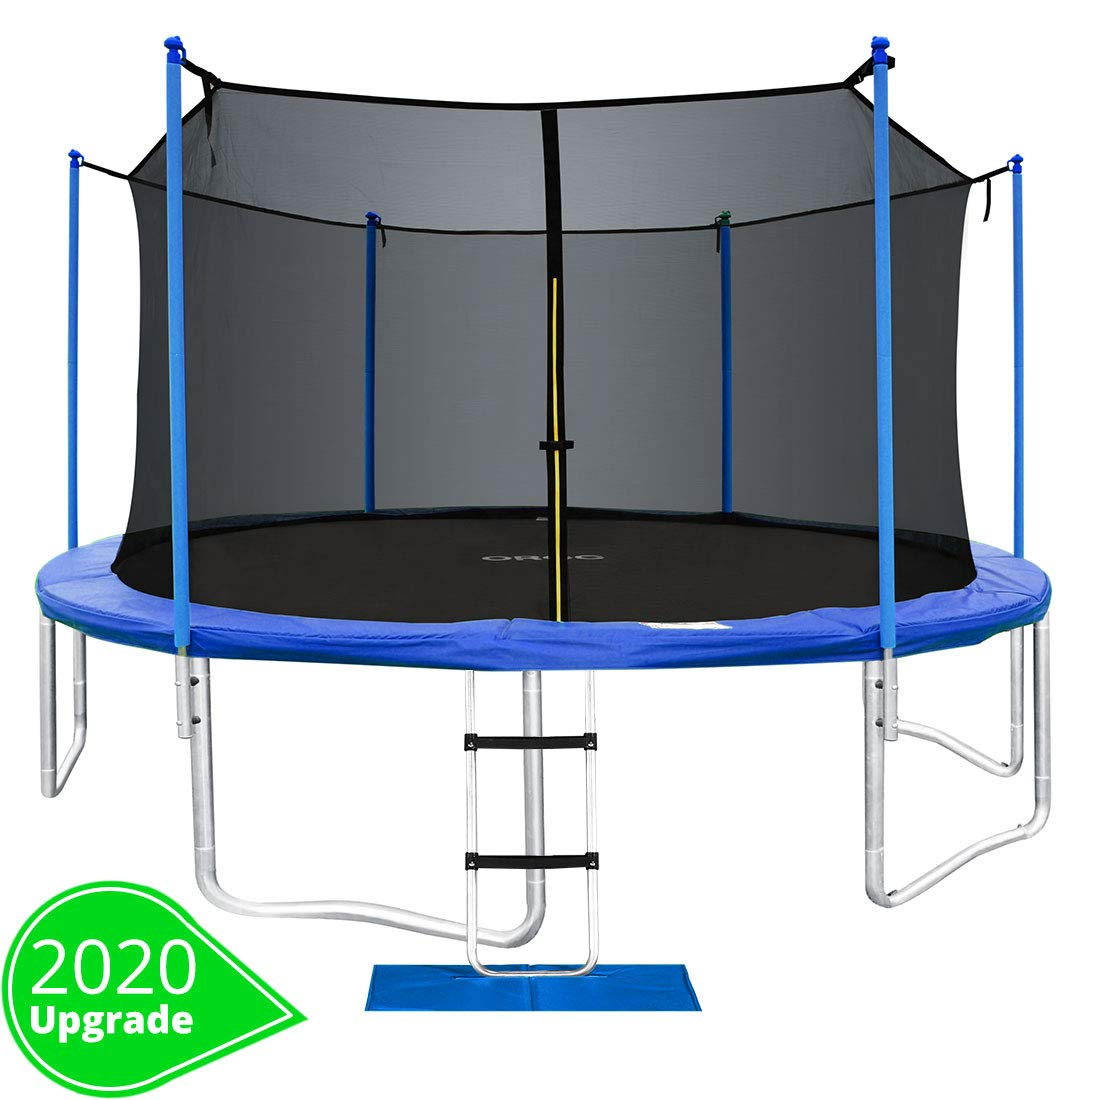 ORCC New Upgrade15 14 12 10FT Trampoline with Safety Enclosure Net Wind Stakes Rain Cover Ladder,Outdoor Trampoline with TUV Certificated,Best Gift for Kids